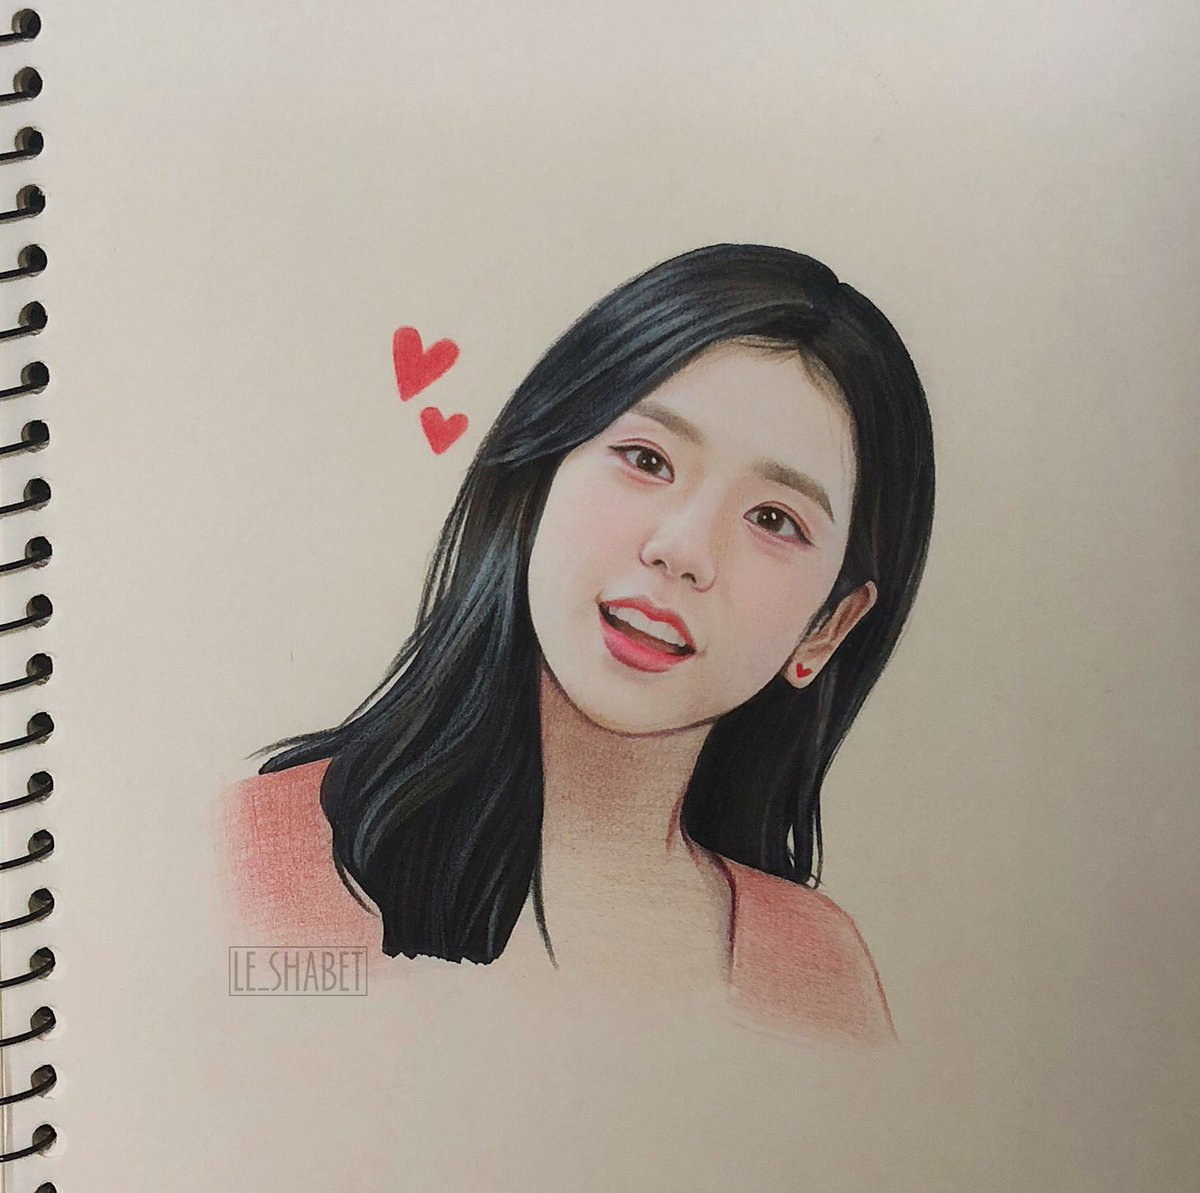 My fan art of Jisoo part 2 #blackpink #Jisoo⁠ ⁠ #blackpinkrosé #블랙핑크 #지수 #jisoofanart #blackpinkfanart